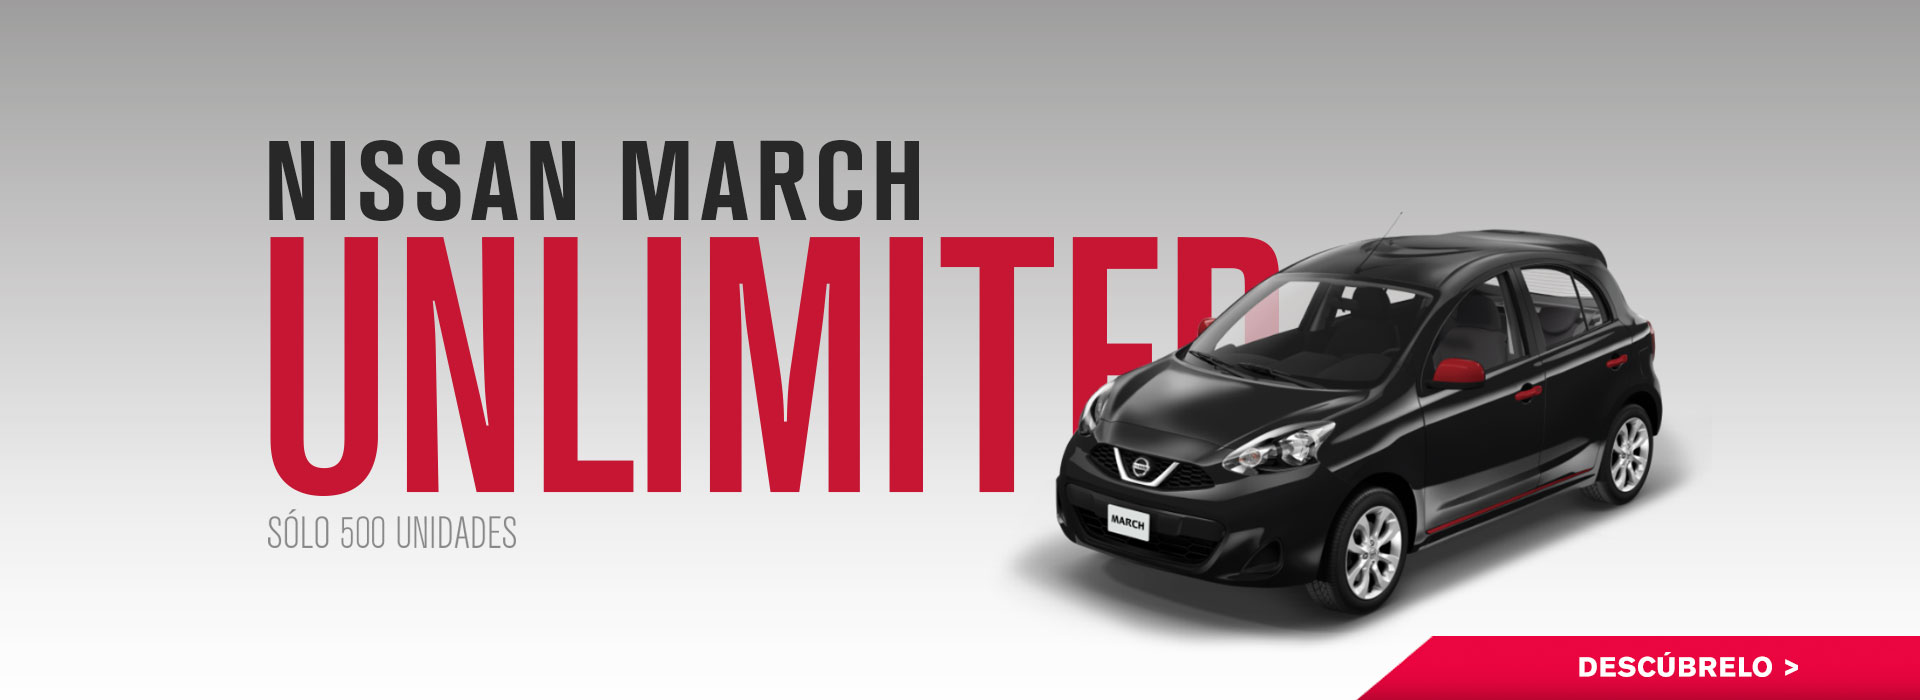 Nissan March Unlimited